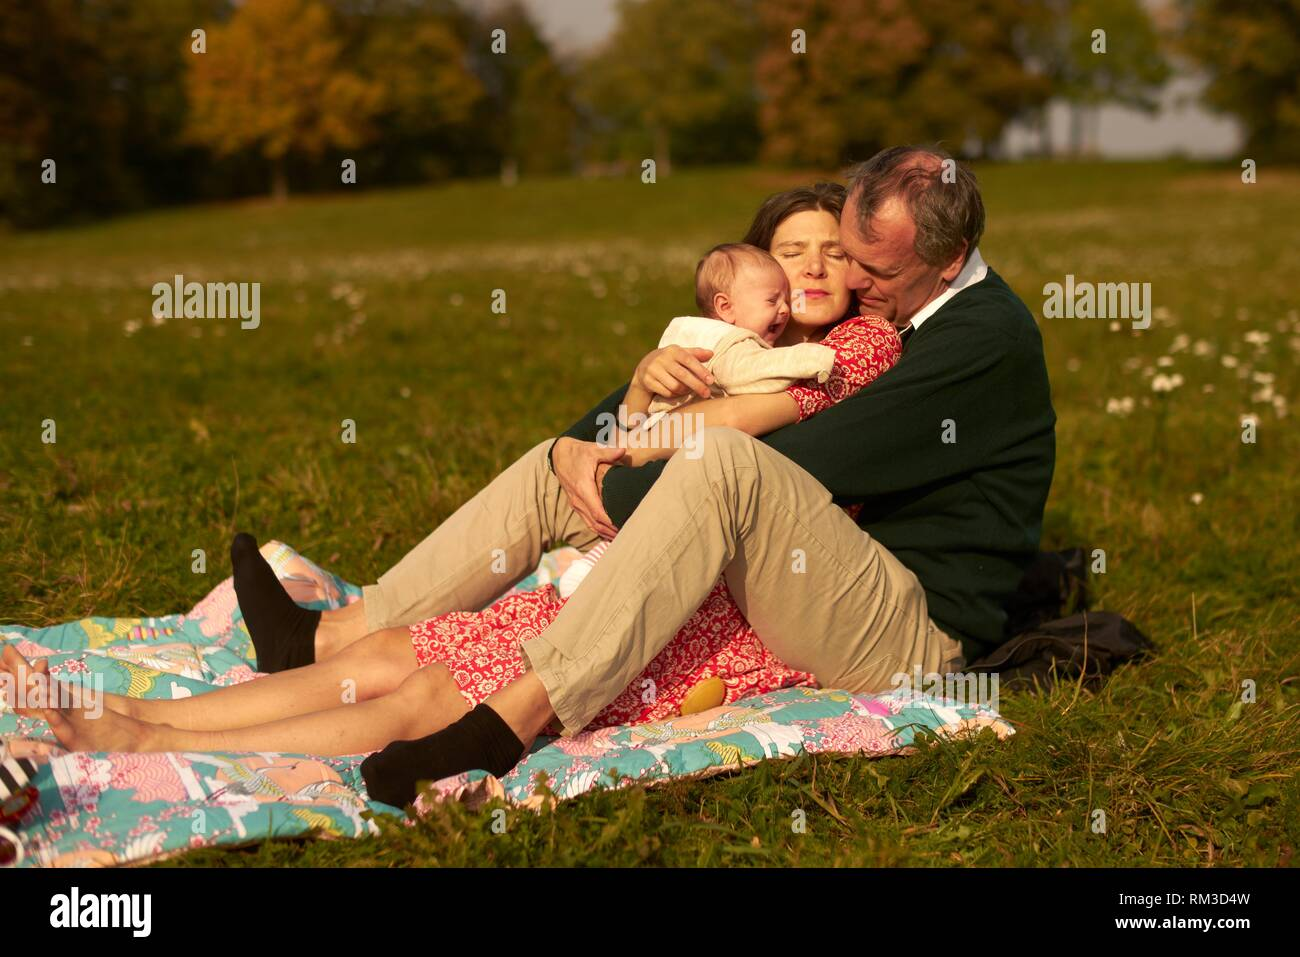 Couple baby family age difference outdoors in park generations grandfather at neuhofener berg munich germany